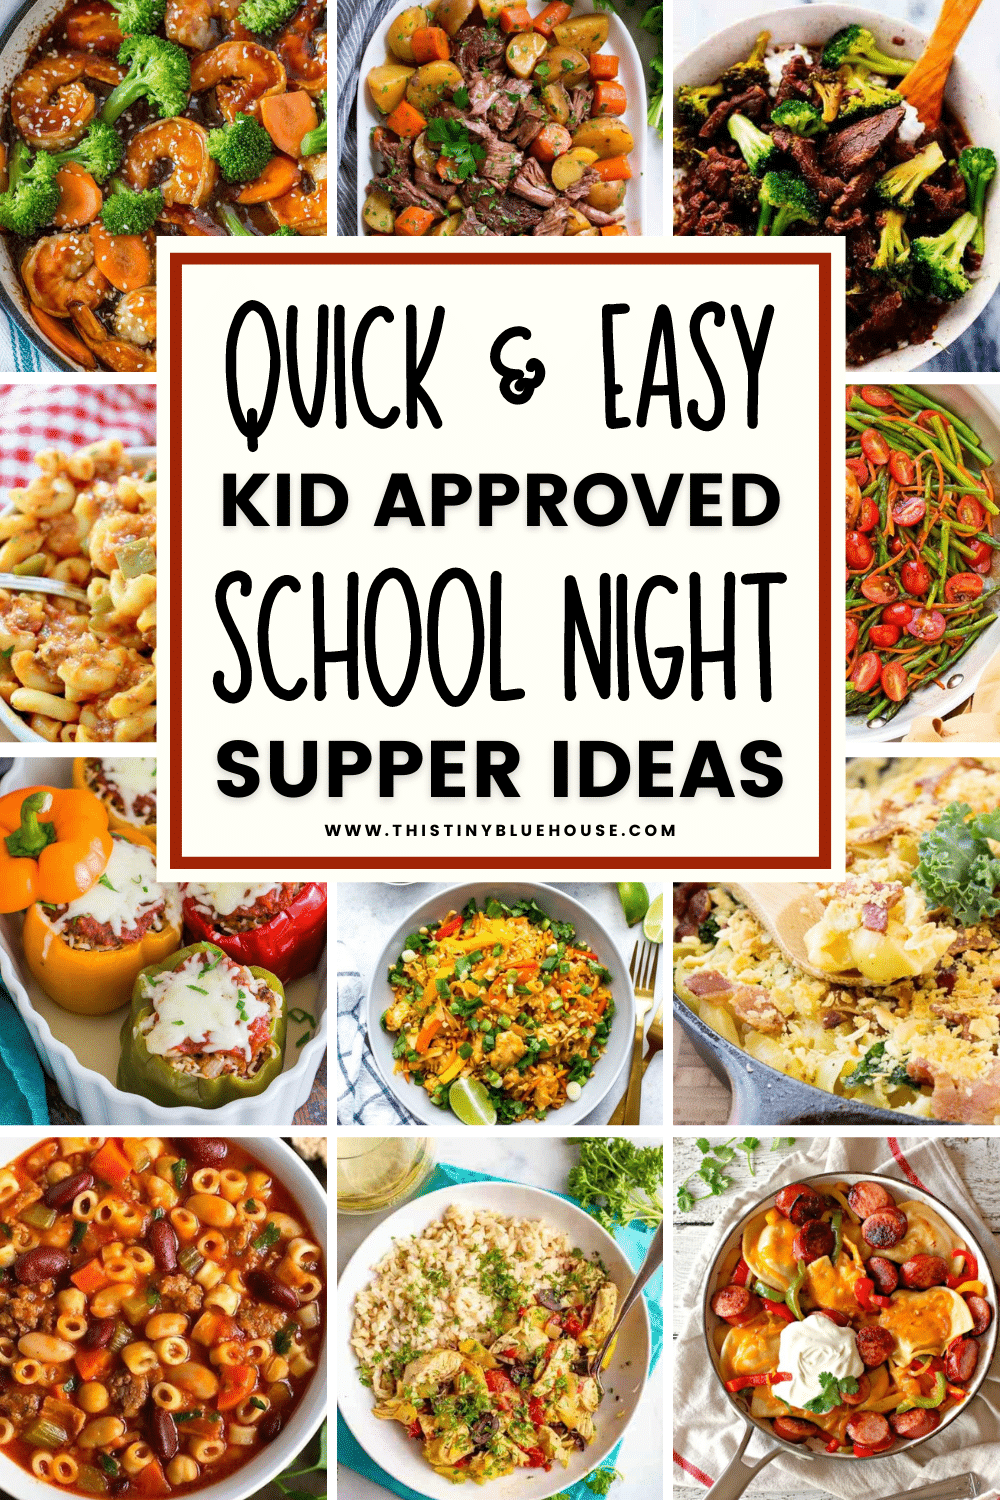 Is dinner a mess at your house? Whether you're getting in late from work, have to jet off to an extra-curricular activity or you just don't feel like cooking (that's okay mama!) these quick and easy school night dinner recipes make getting a wholesome kid approved dinner on the table as easy as possible.